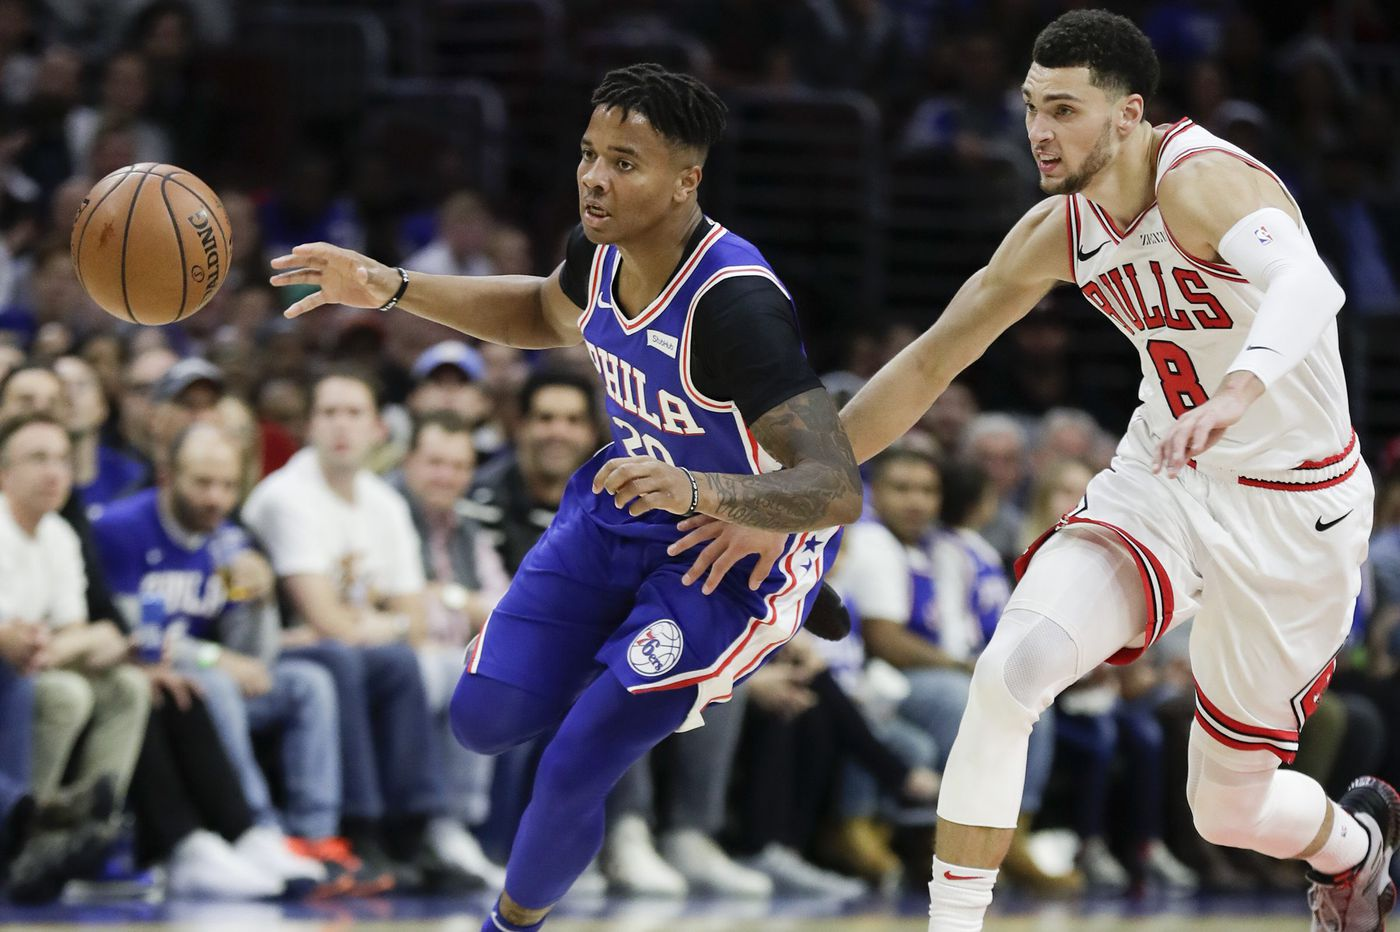 The Bulls' game plan vs. the Sixers was to ignore Markelle Fultz. Other teams might do that, too.